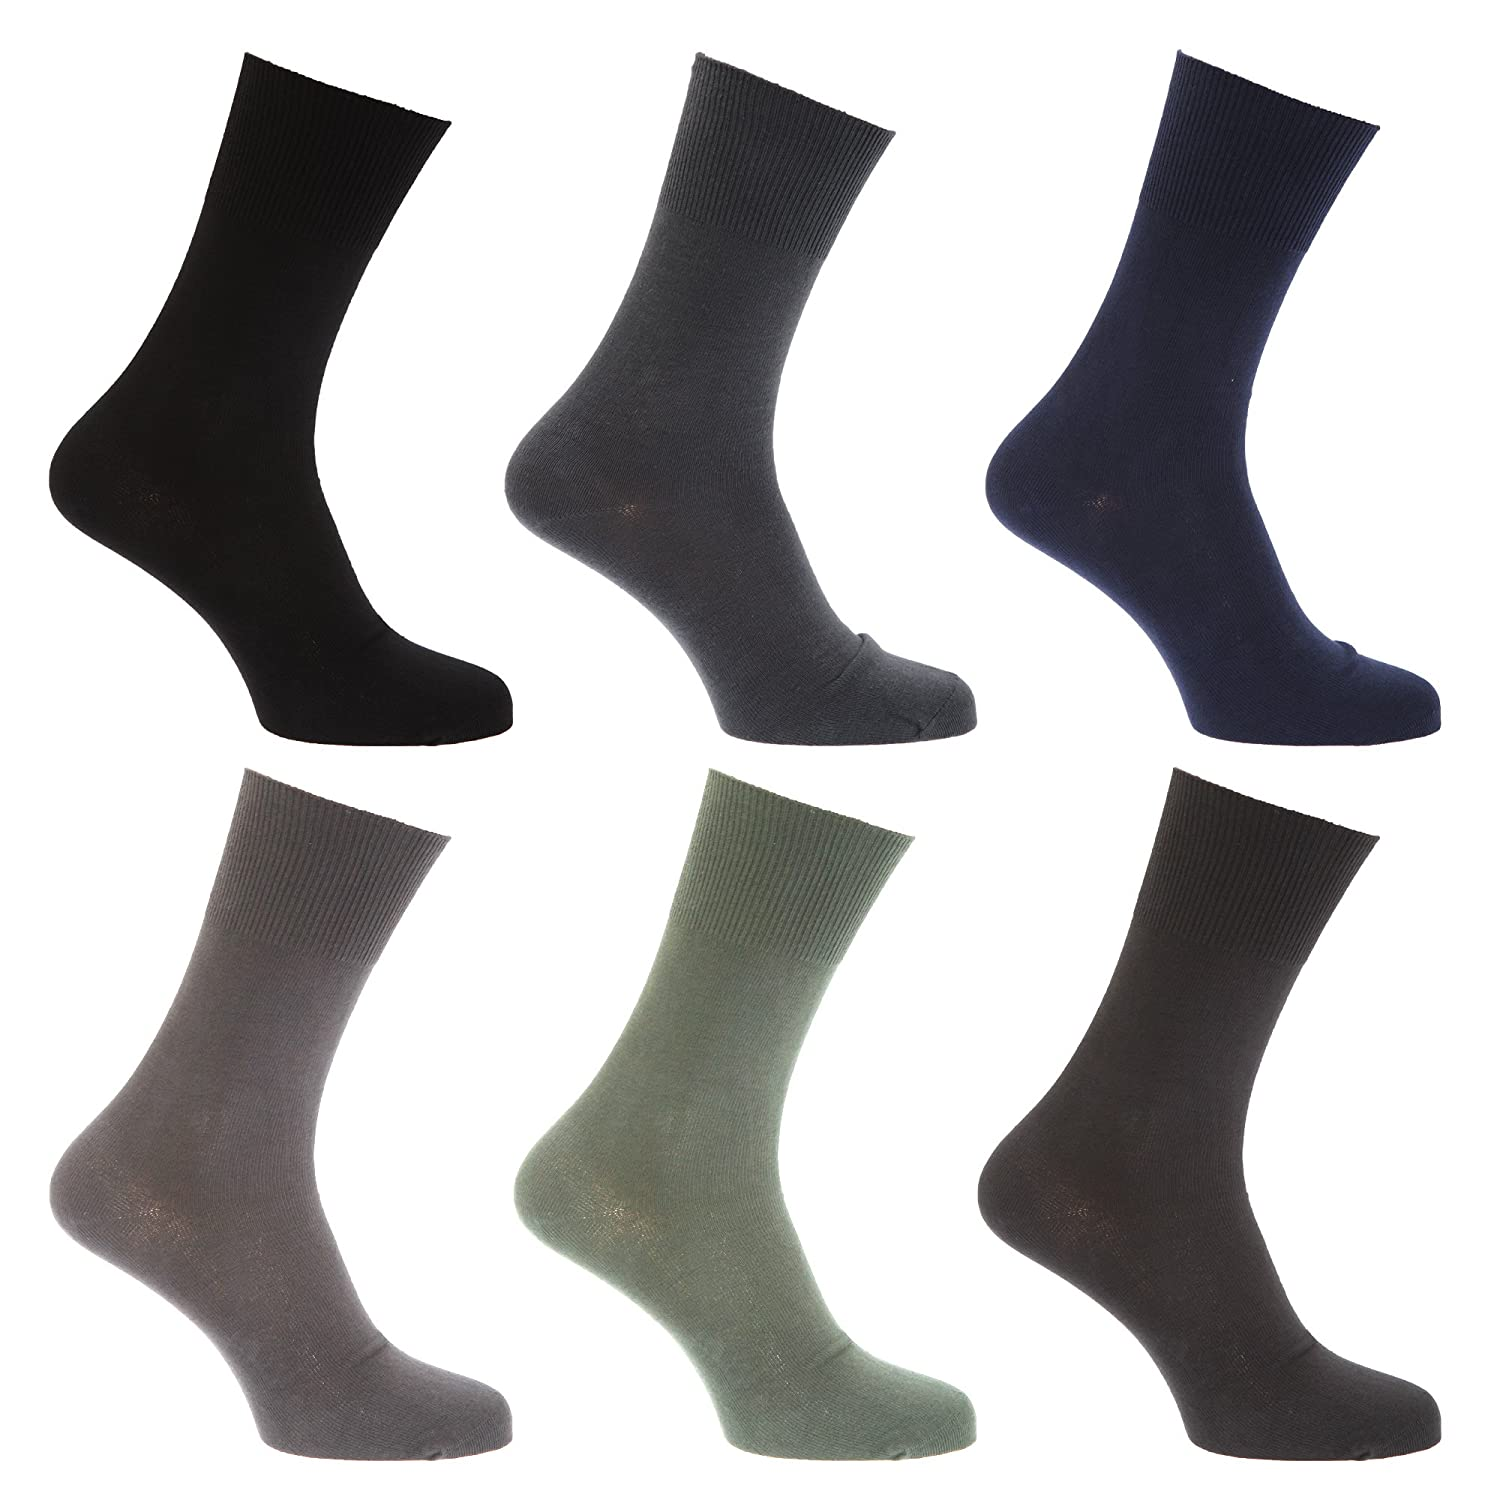 Mens Stay Up Non Elastic Diabetic Socks (Pack Of 6) Universal Textiles UTMB250_3